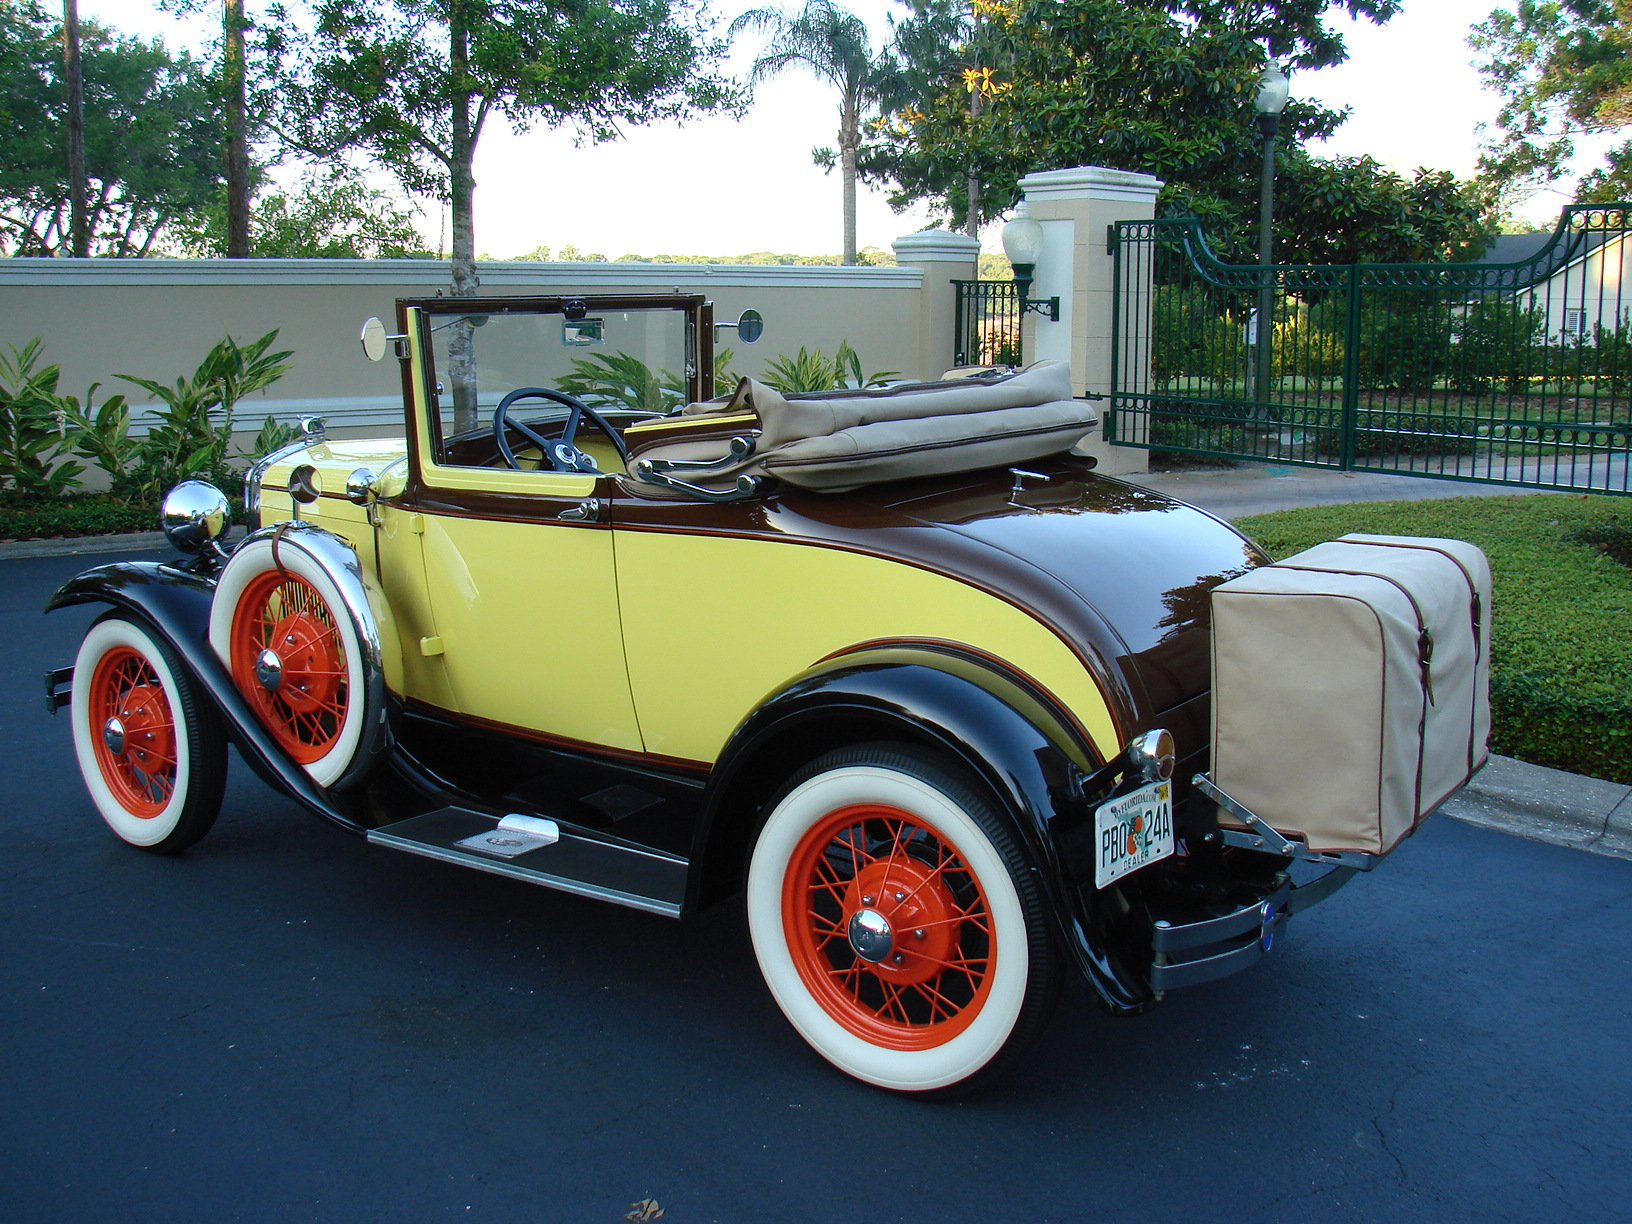 1931 Ford Model A Cabriolet - SOLD!! - Vantage Sports Cars | Vantage Sports Cars